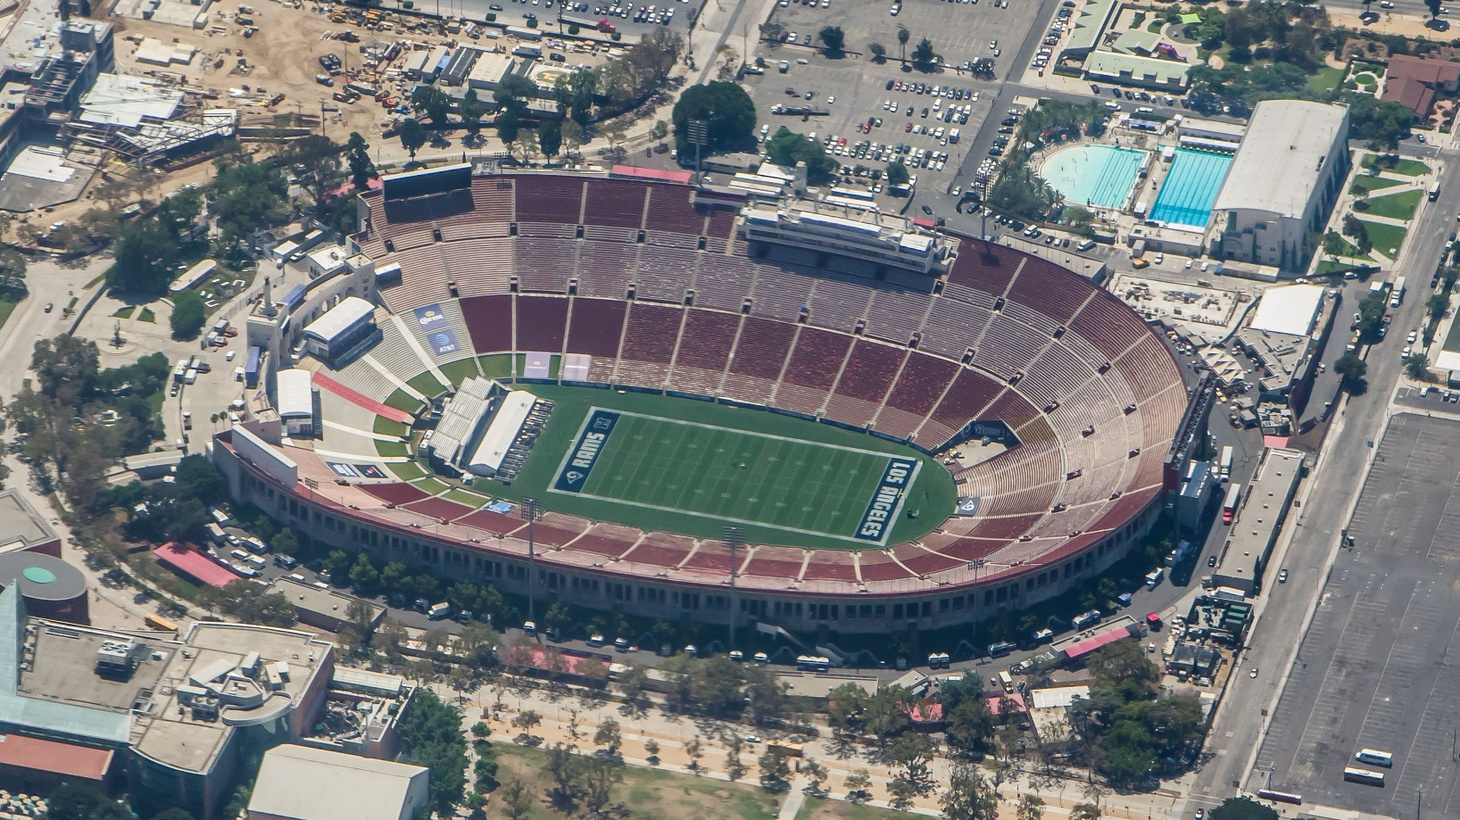 The L.A. Coliseum was completed in 1923. The University of Southern California, a tenant since it opened, is the major tenant now and into the future.